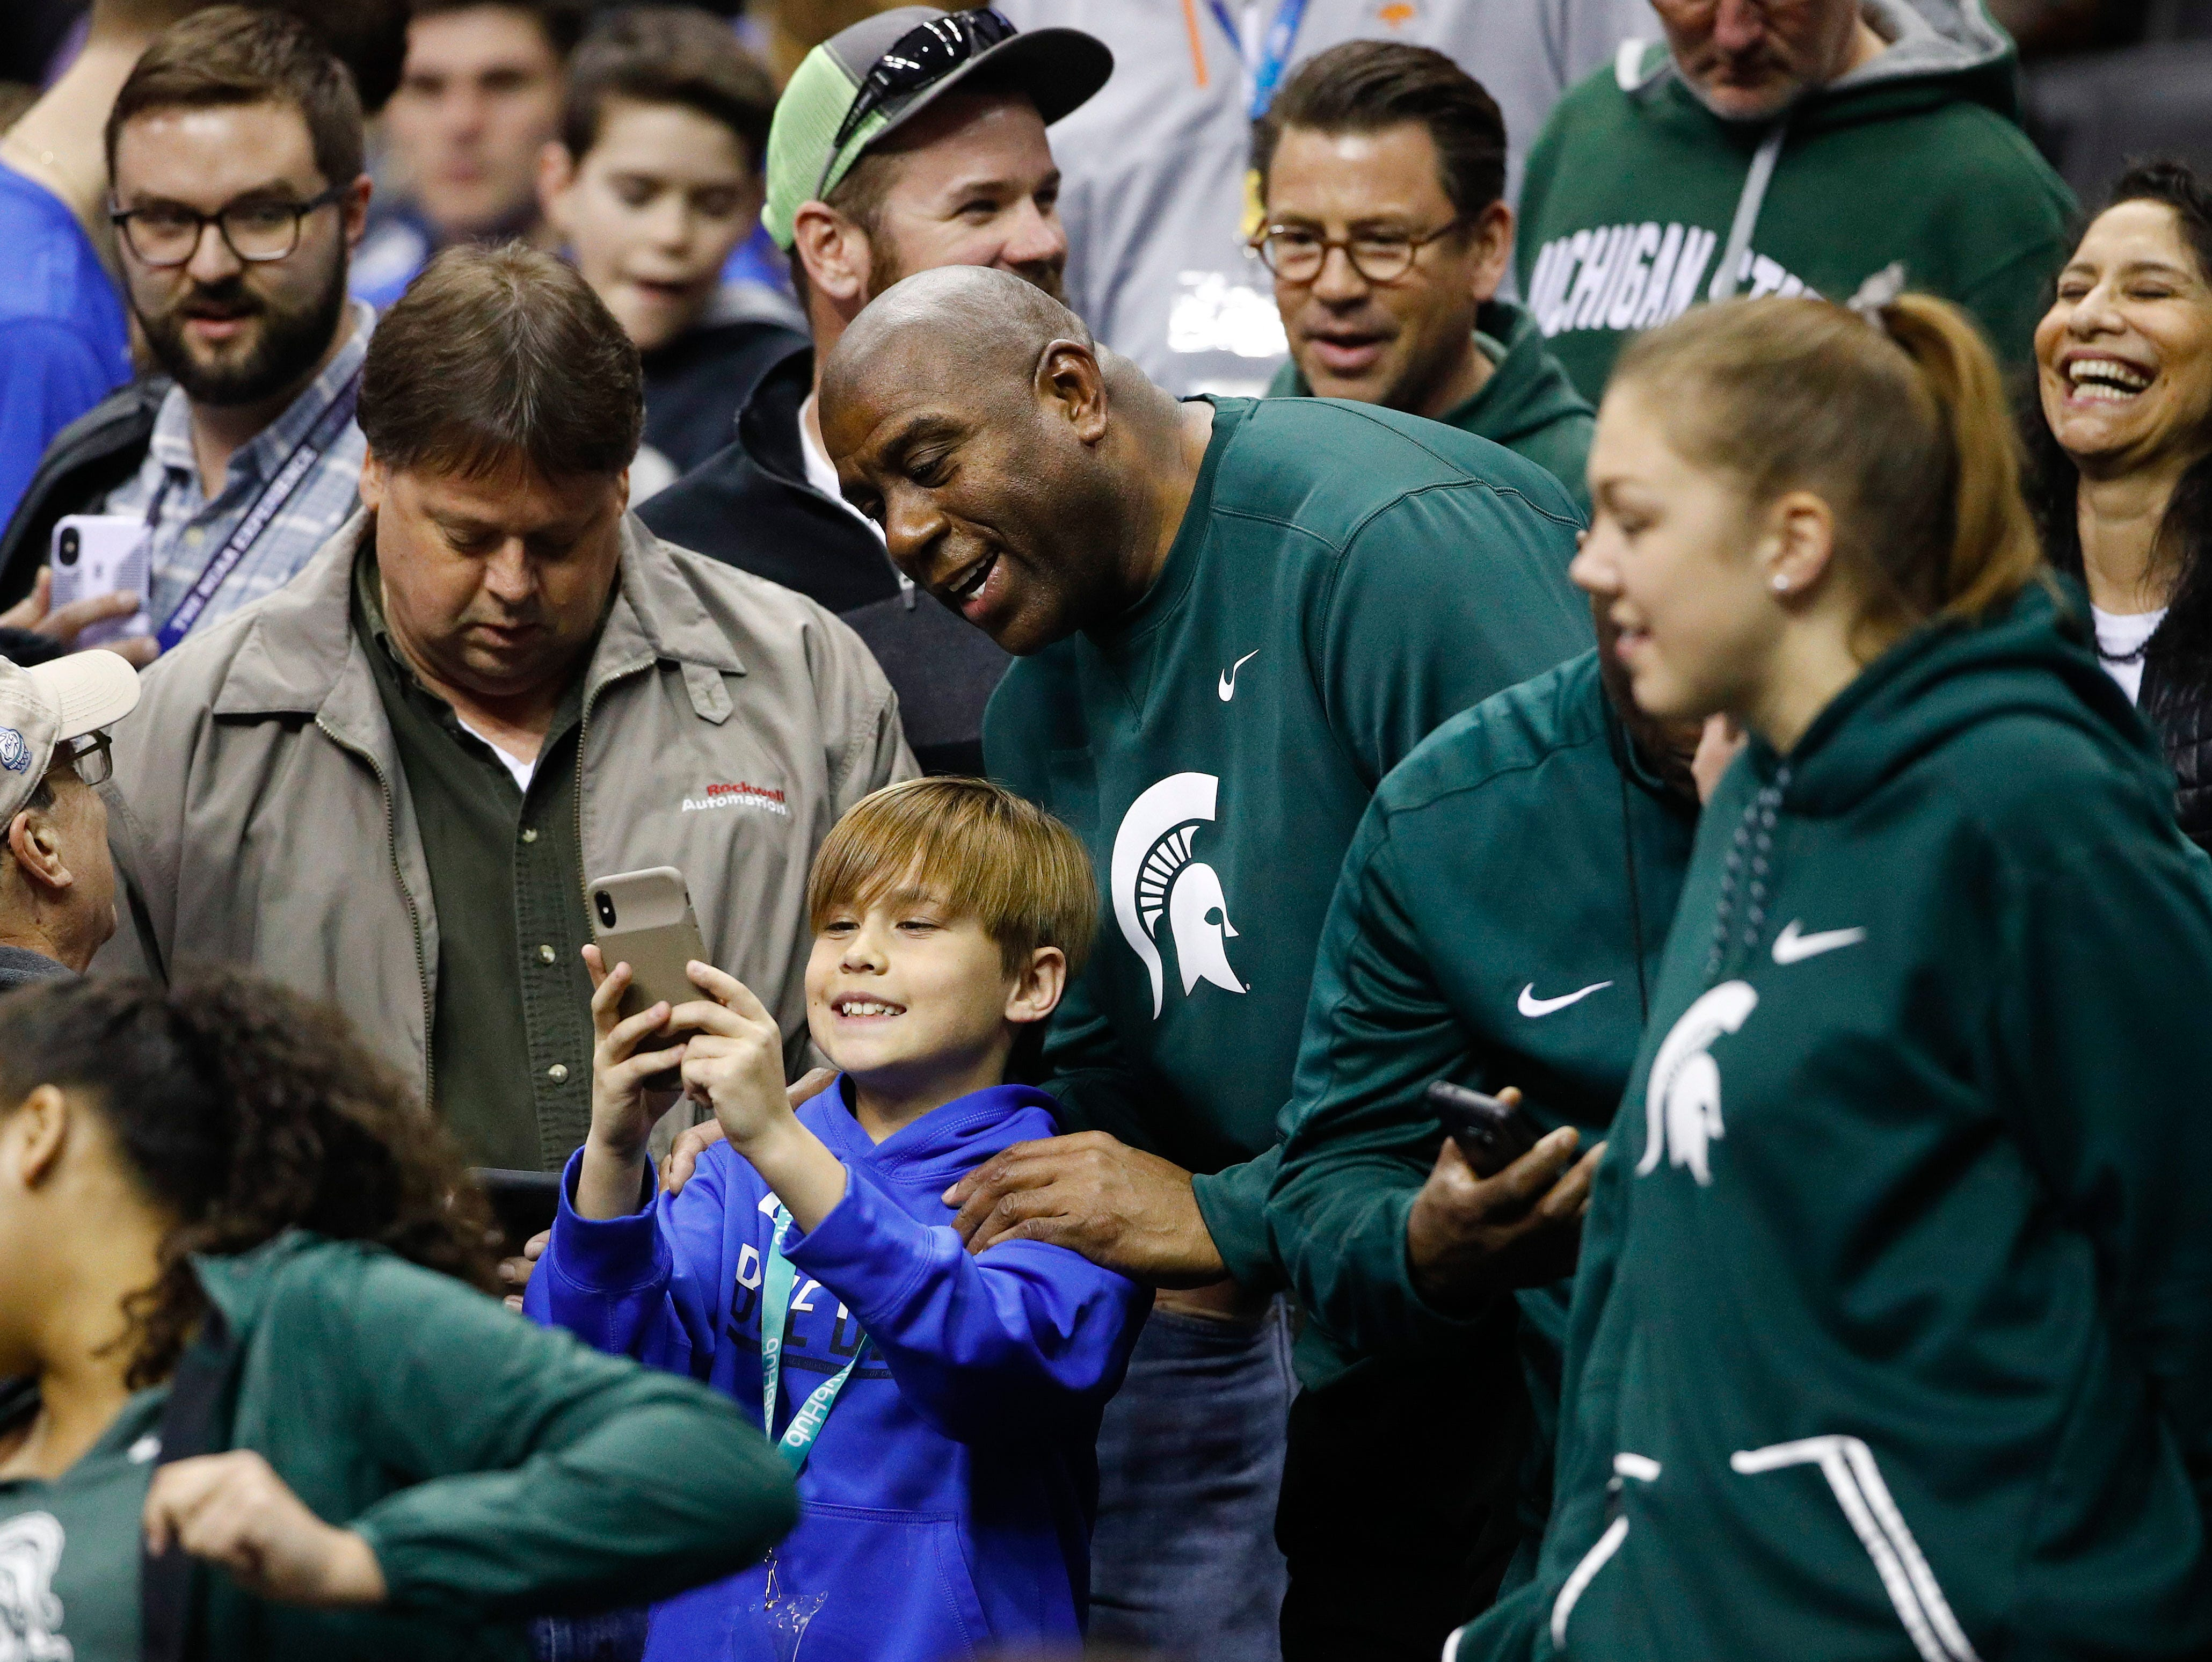 Los Angeles Lakers president and Michigan State alumnus Magic Johnson, center, poses for photos before an NCAA men's East Regional final college basketball game between Michigan State and Duke in Washington, Sunday, March 31, 2019.